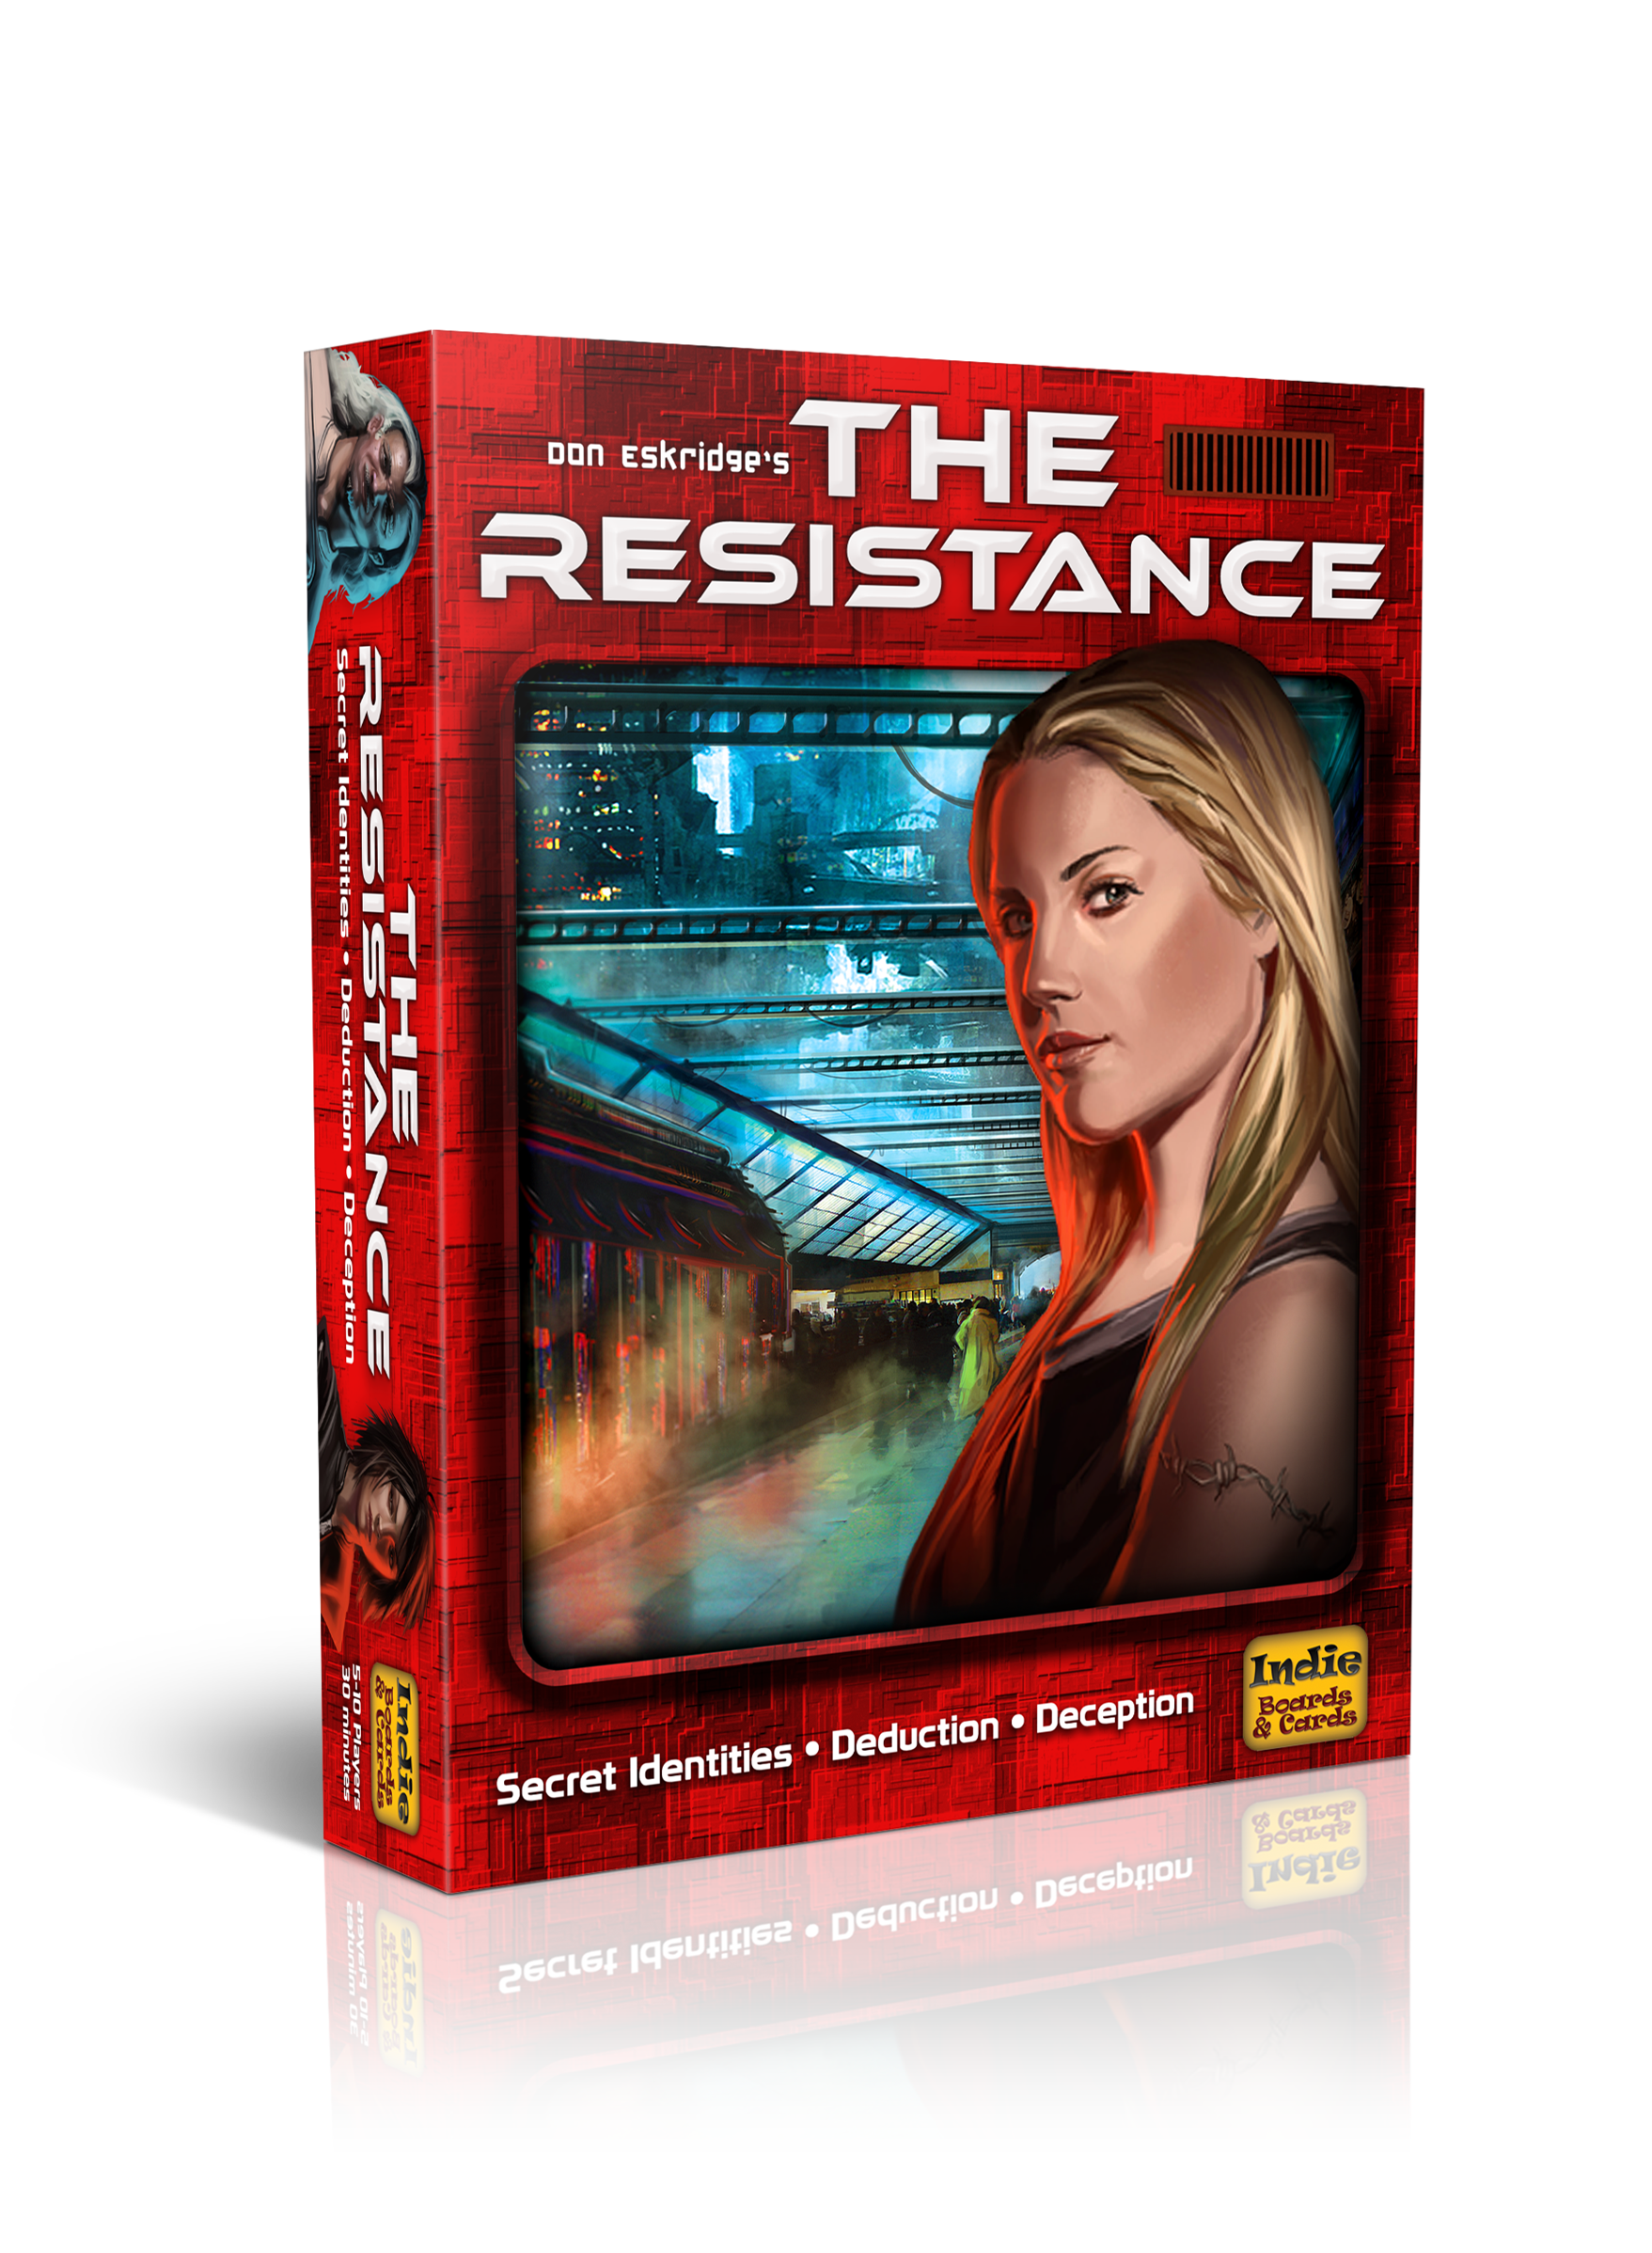 The Resistance is a Very